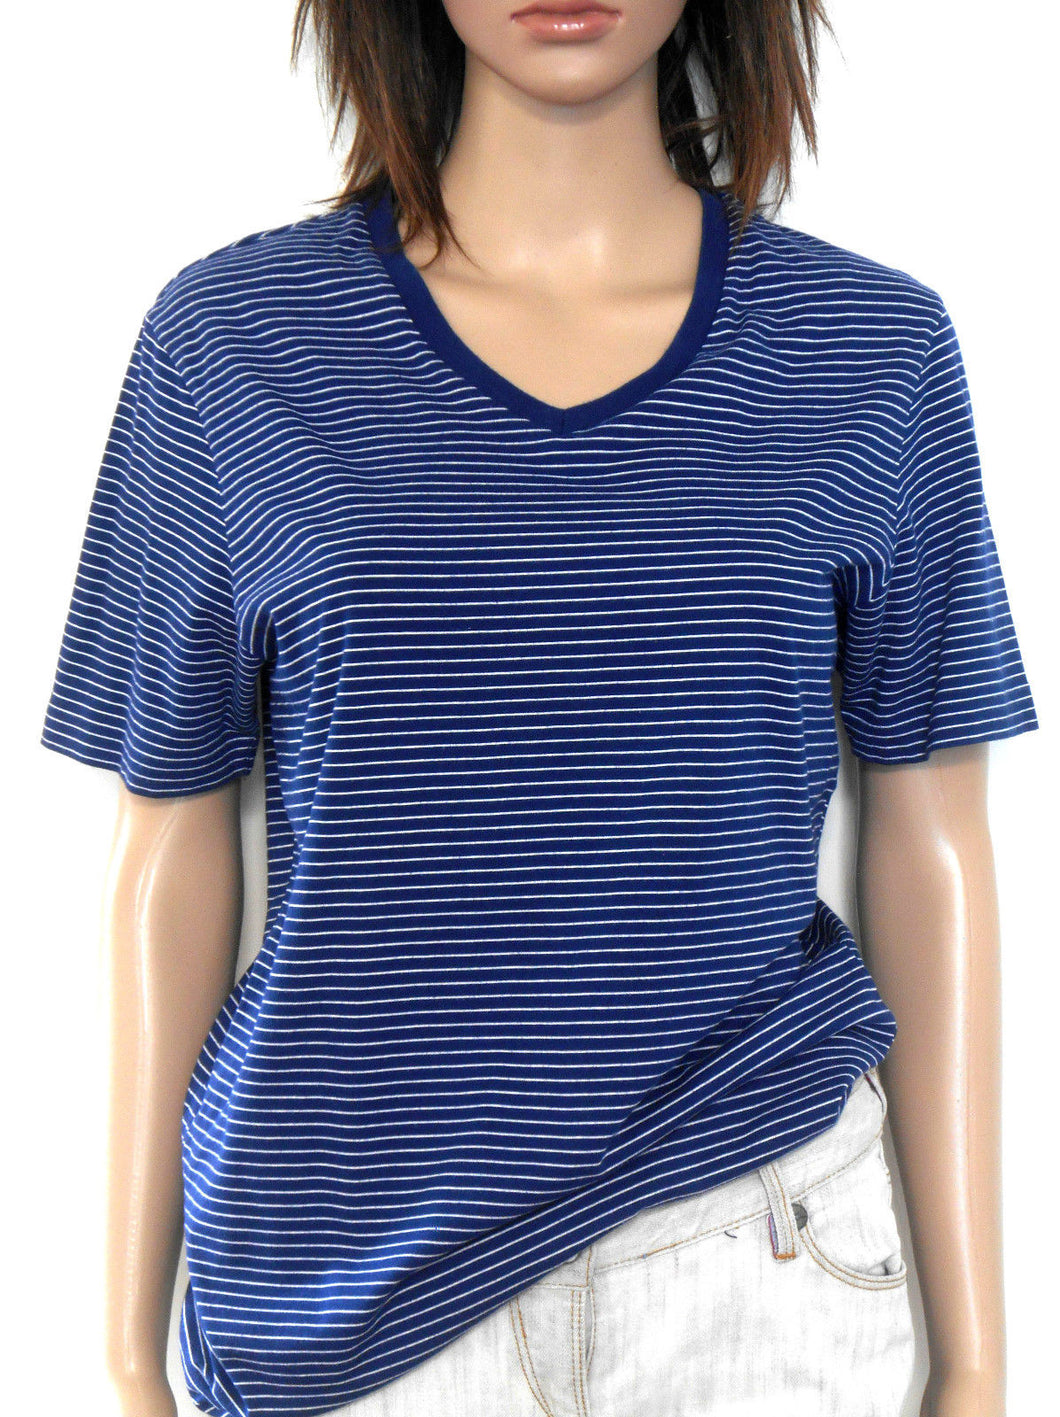 Country Road -  t shirt, nautical colour & stripe, sz. 10/XS - navy V neckline, exc. cnd.